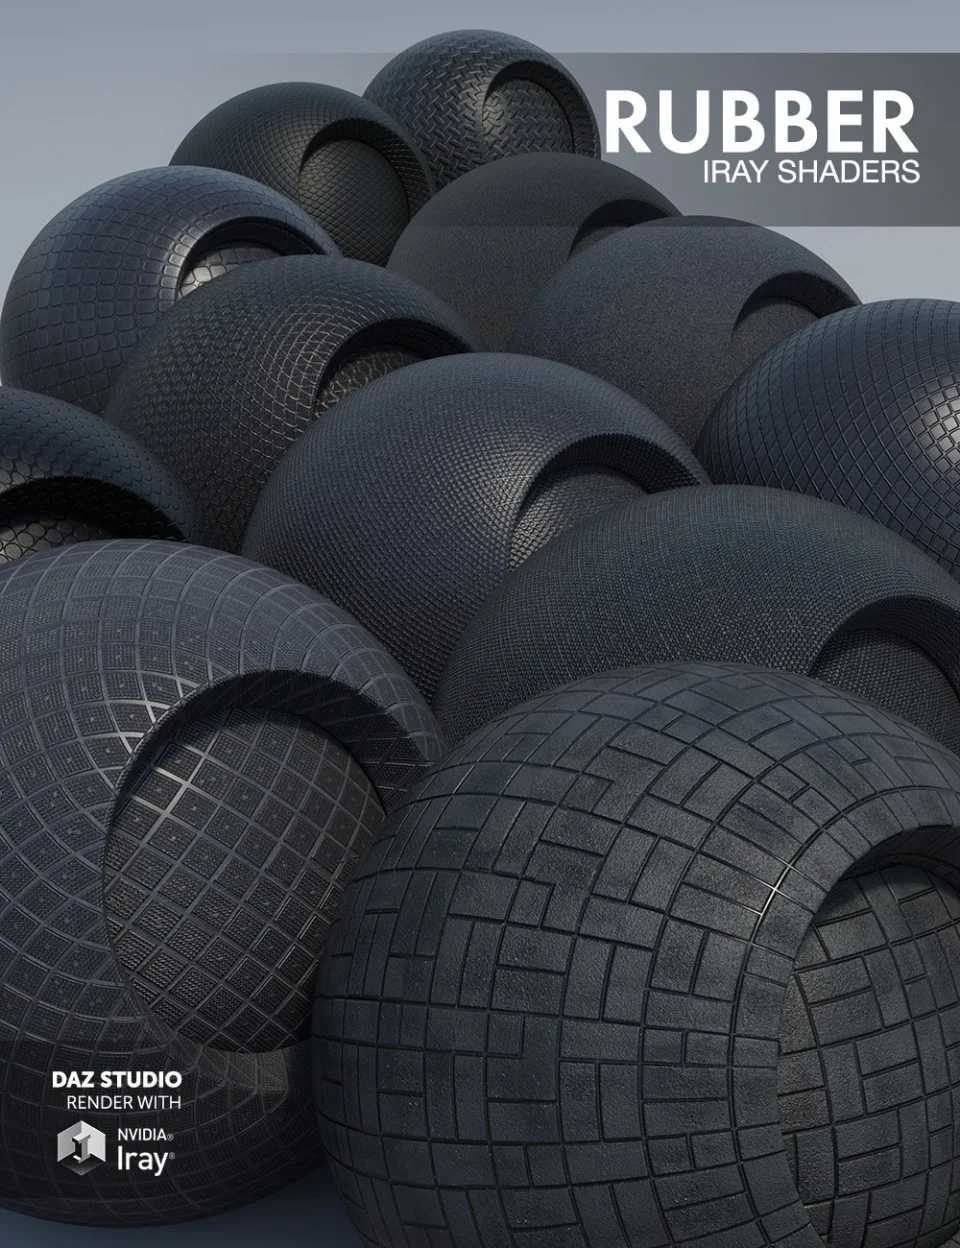 Rubber – Iray Shaders